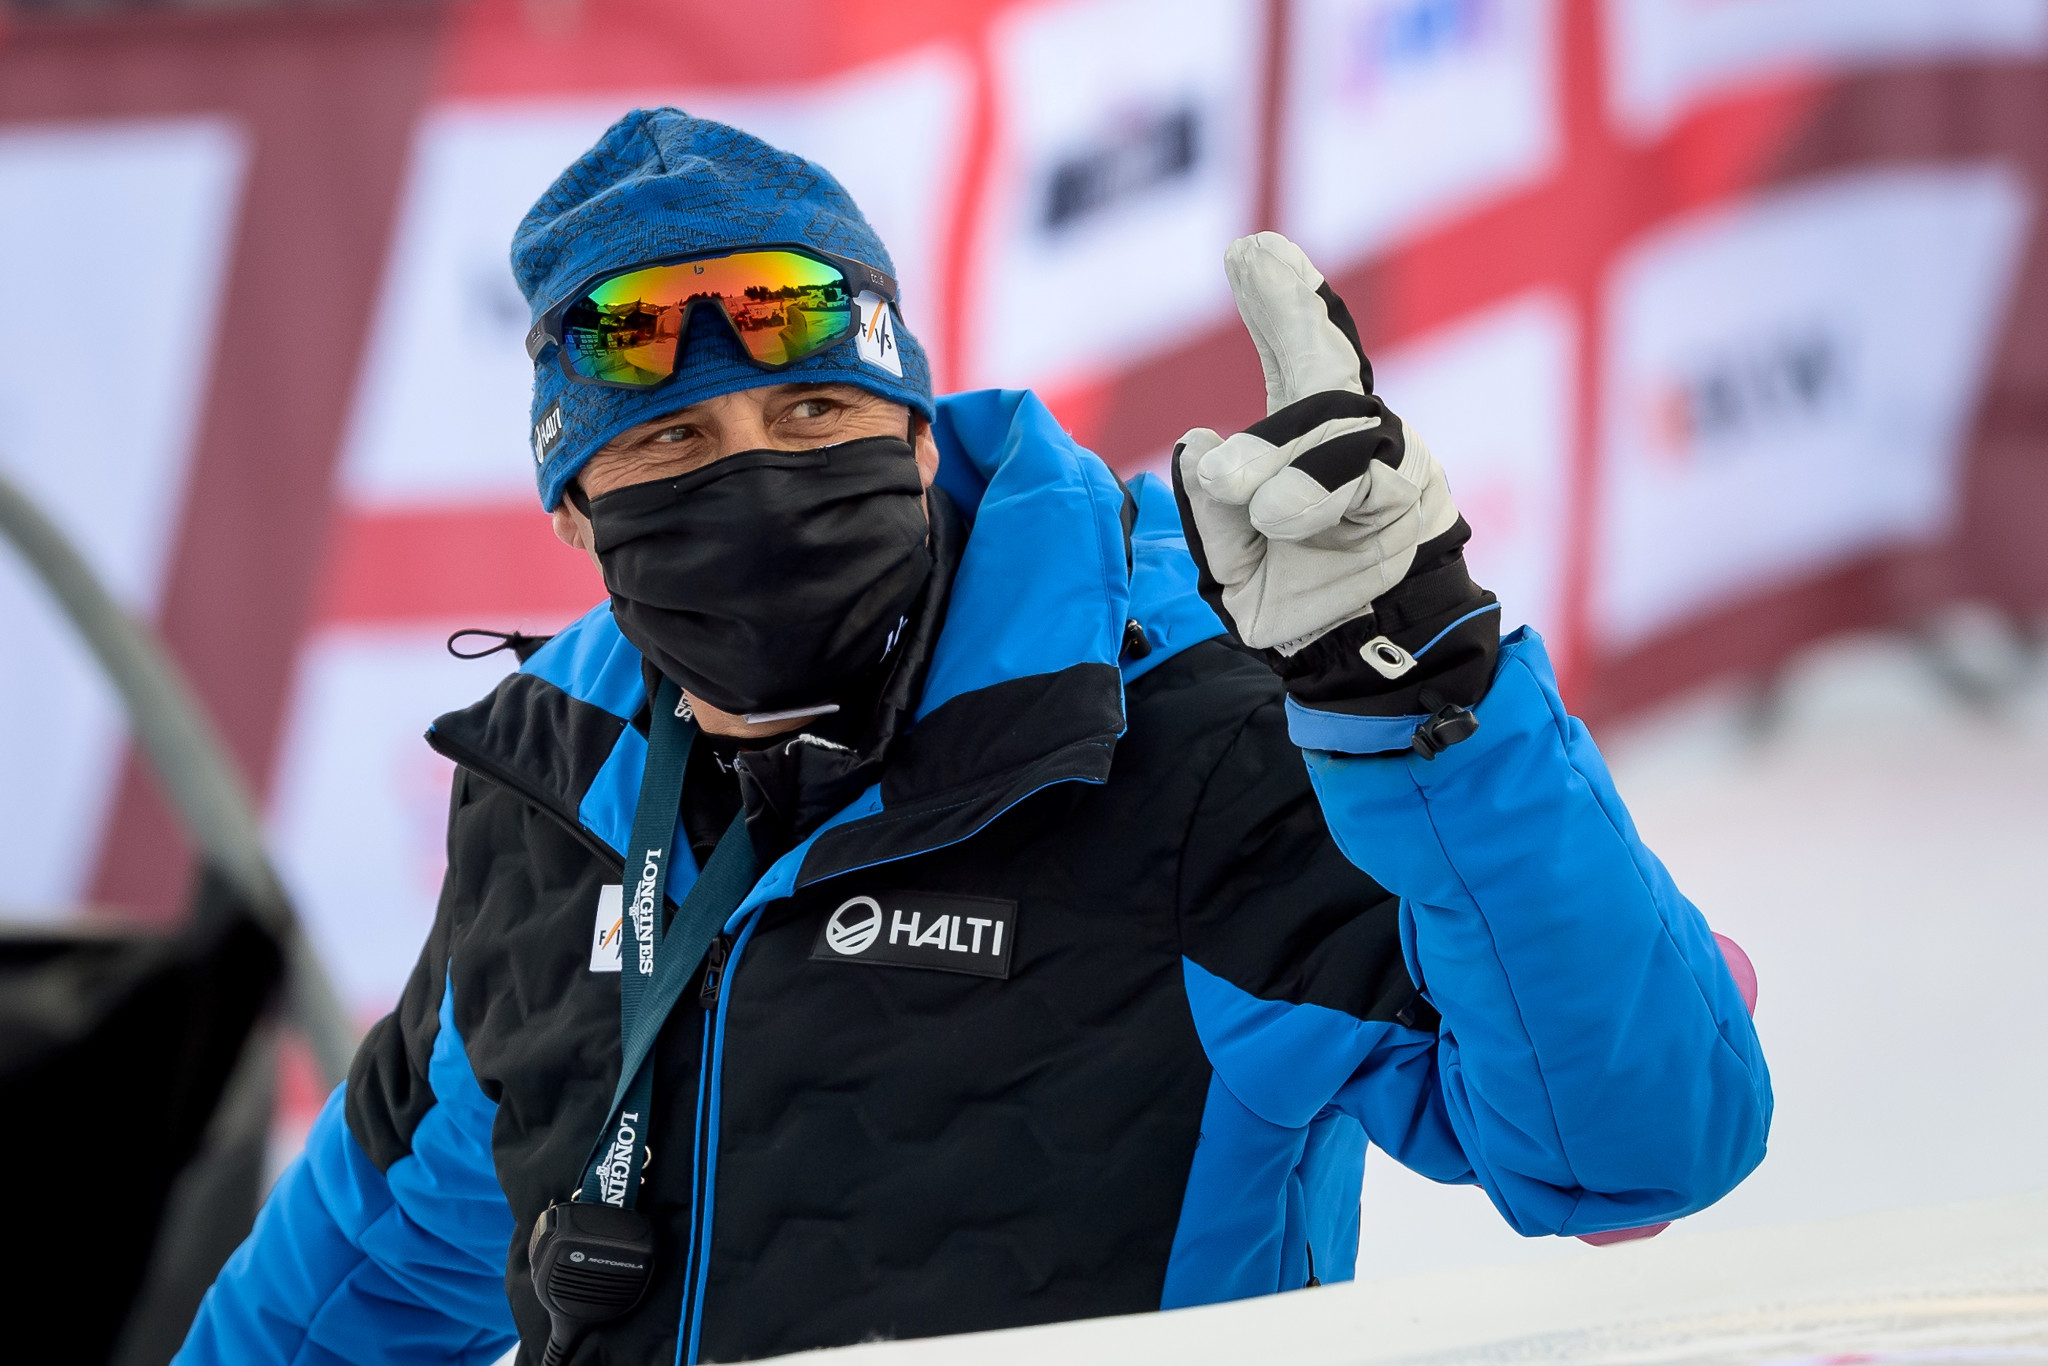 FIS chief race director Waldner tests positive for COVID-19